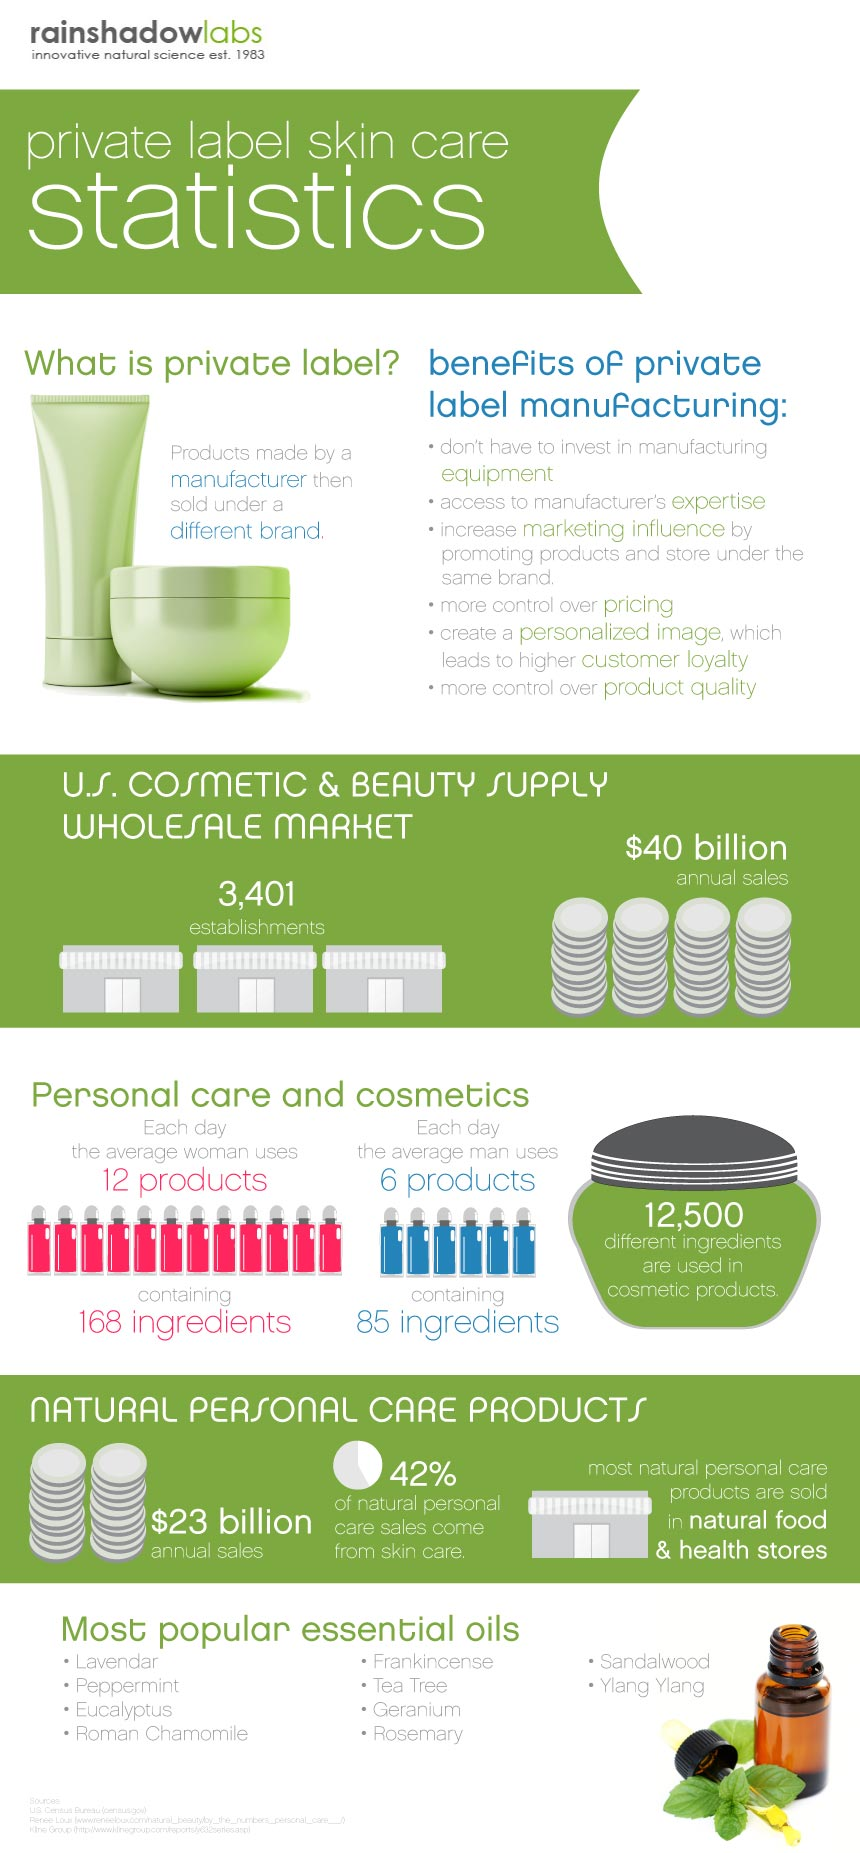 Private Label Skin Care Statistics infographic